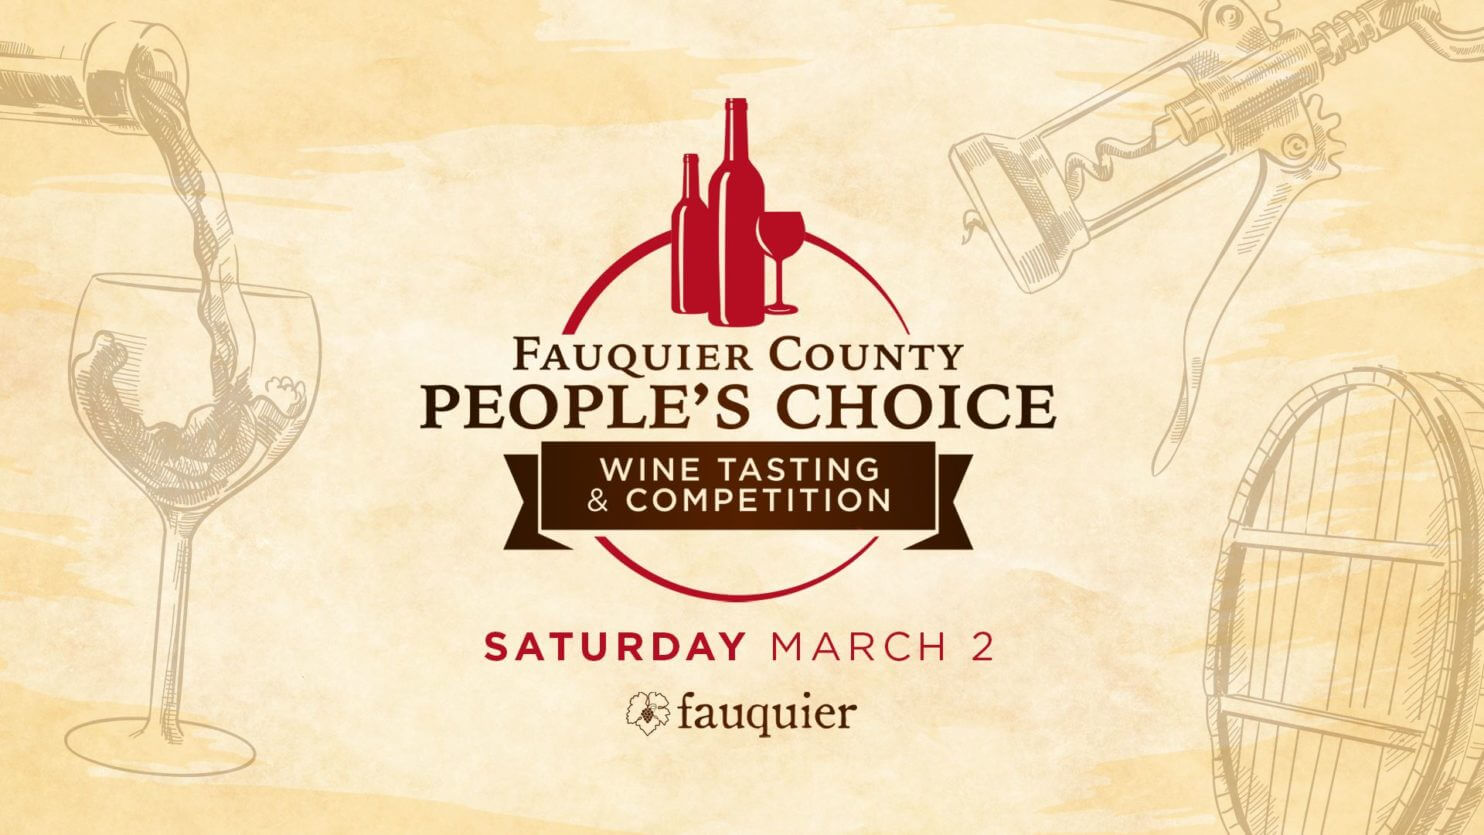 Fauquier County People's Choice Wine Tasting and Competition